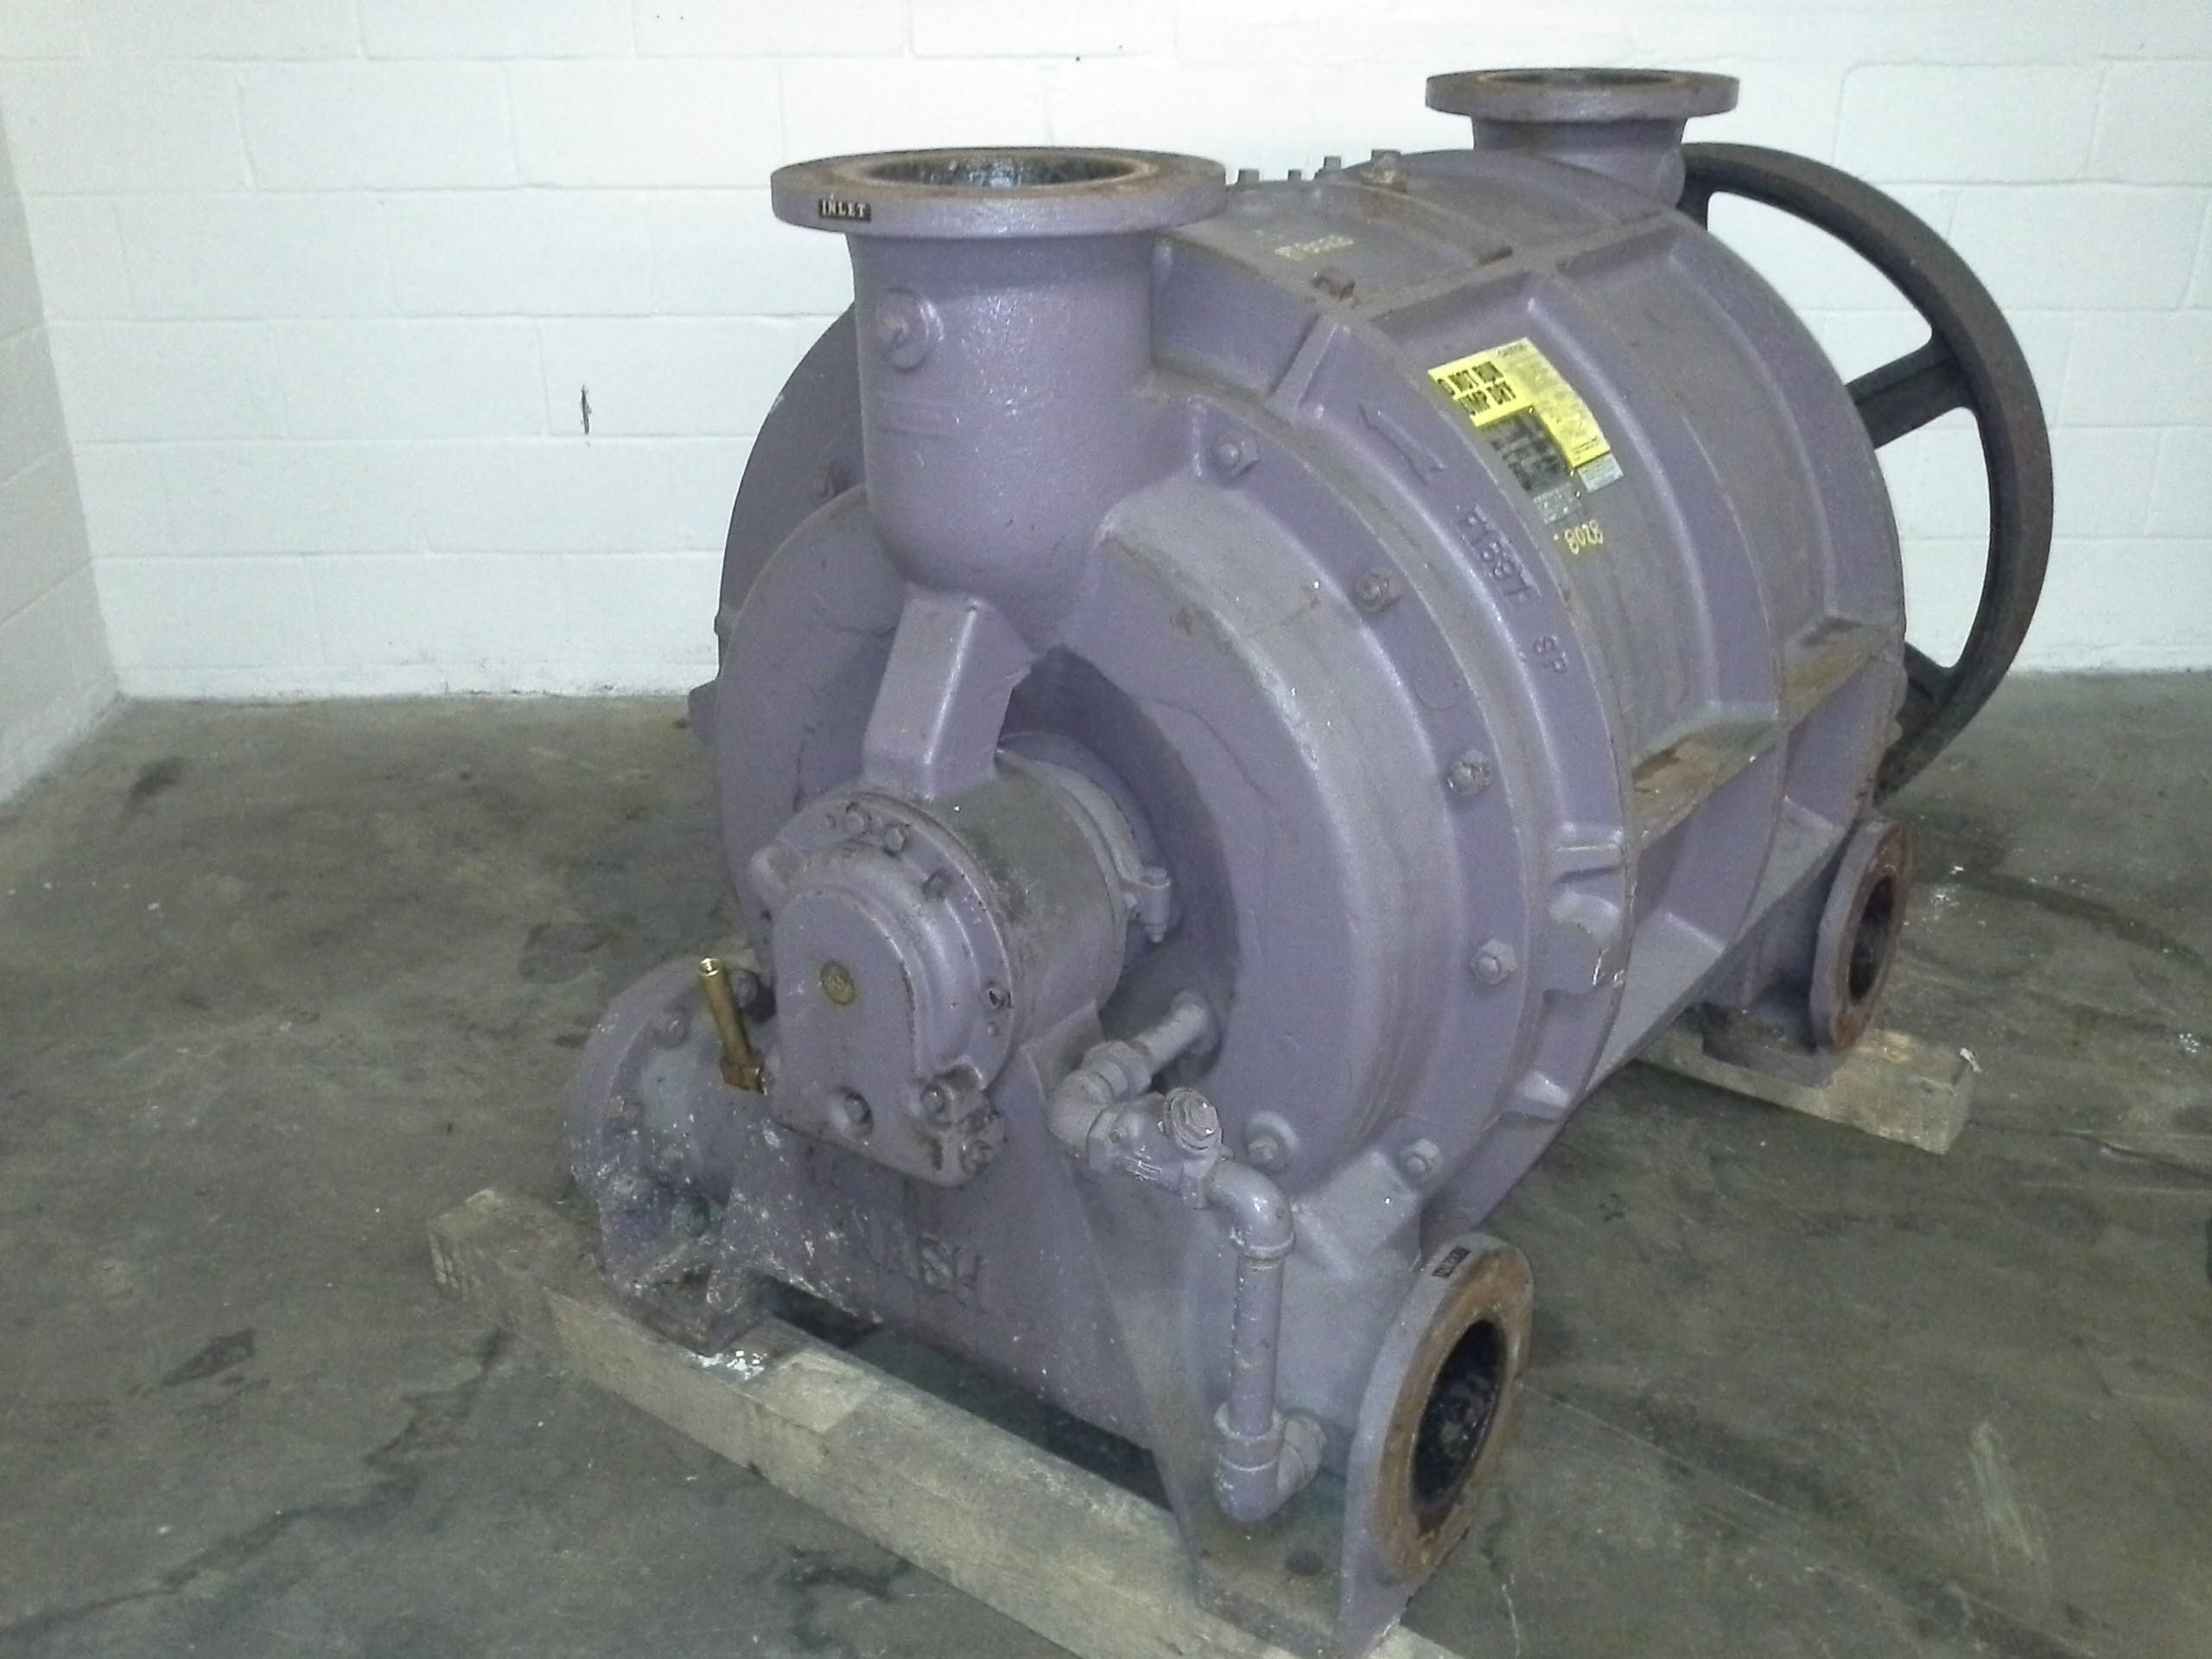 Nash CL3002 vacuum pump - Nash Vacuum pump model CL3002 , Body and Heads are clad in Carbon Steel - sold by Peak Machinery Inc.